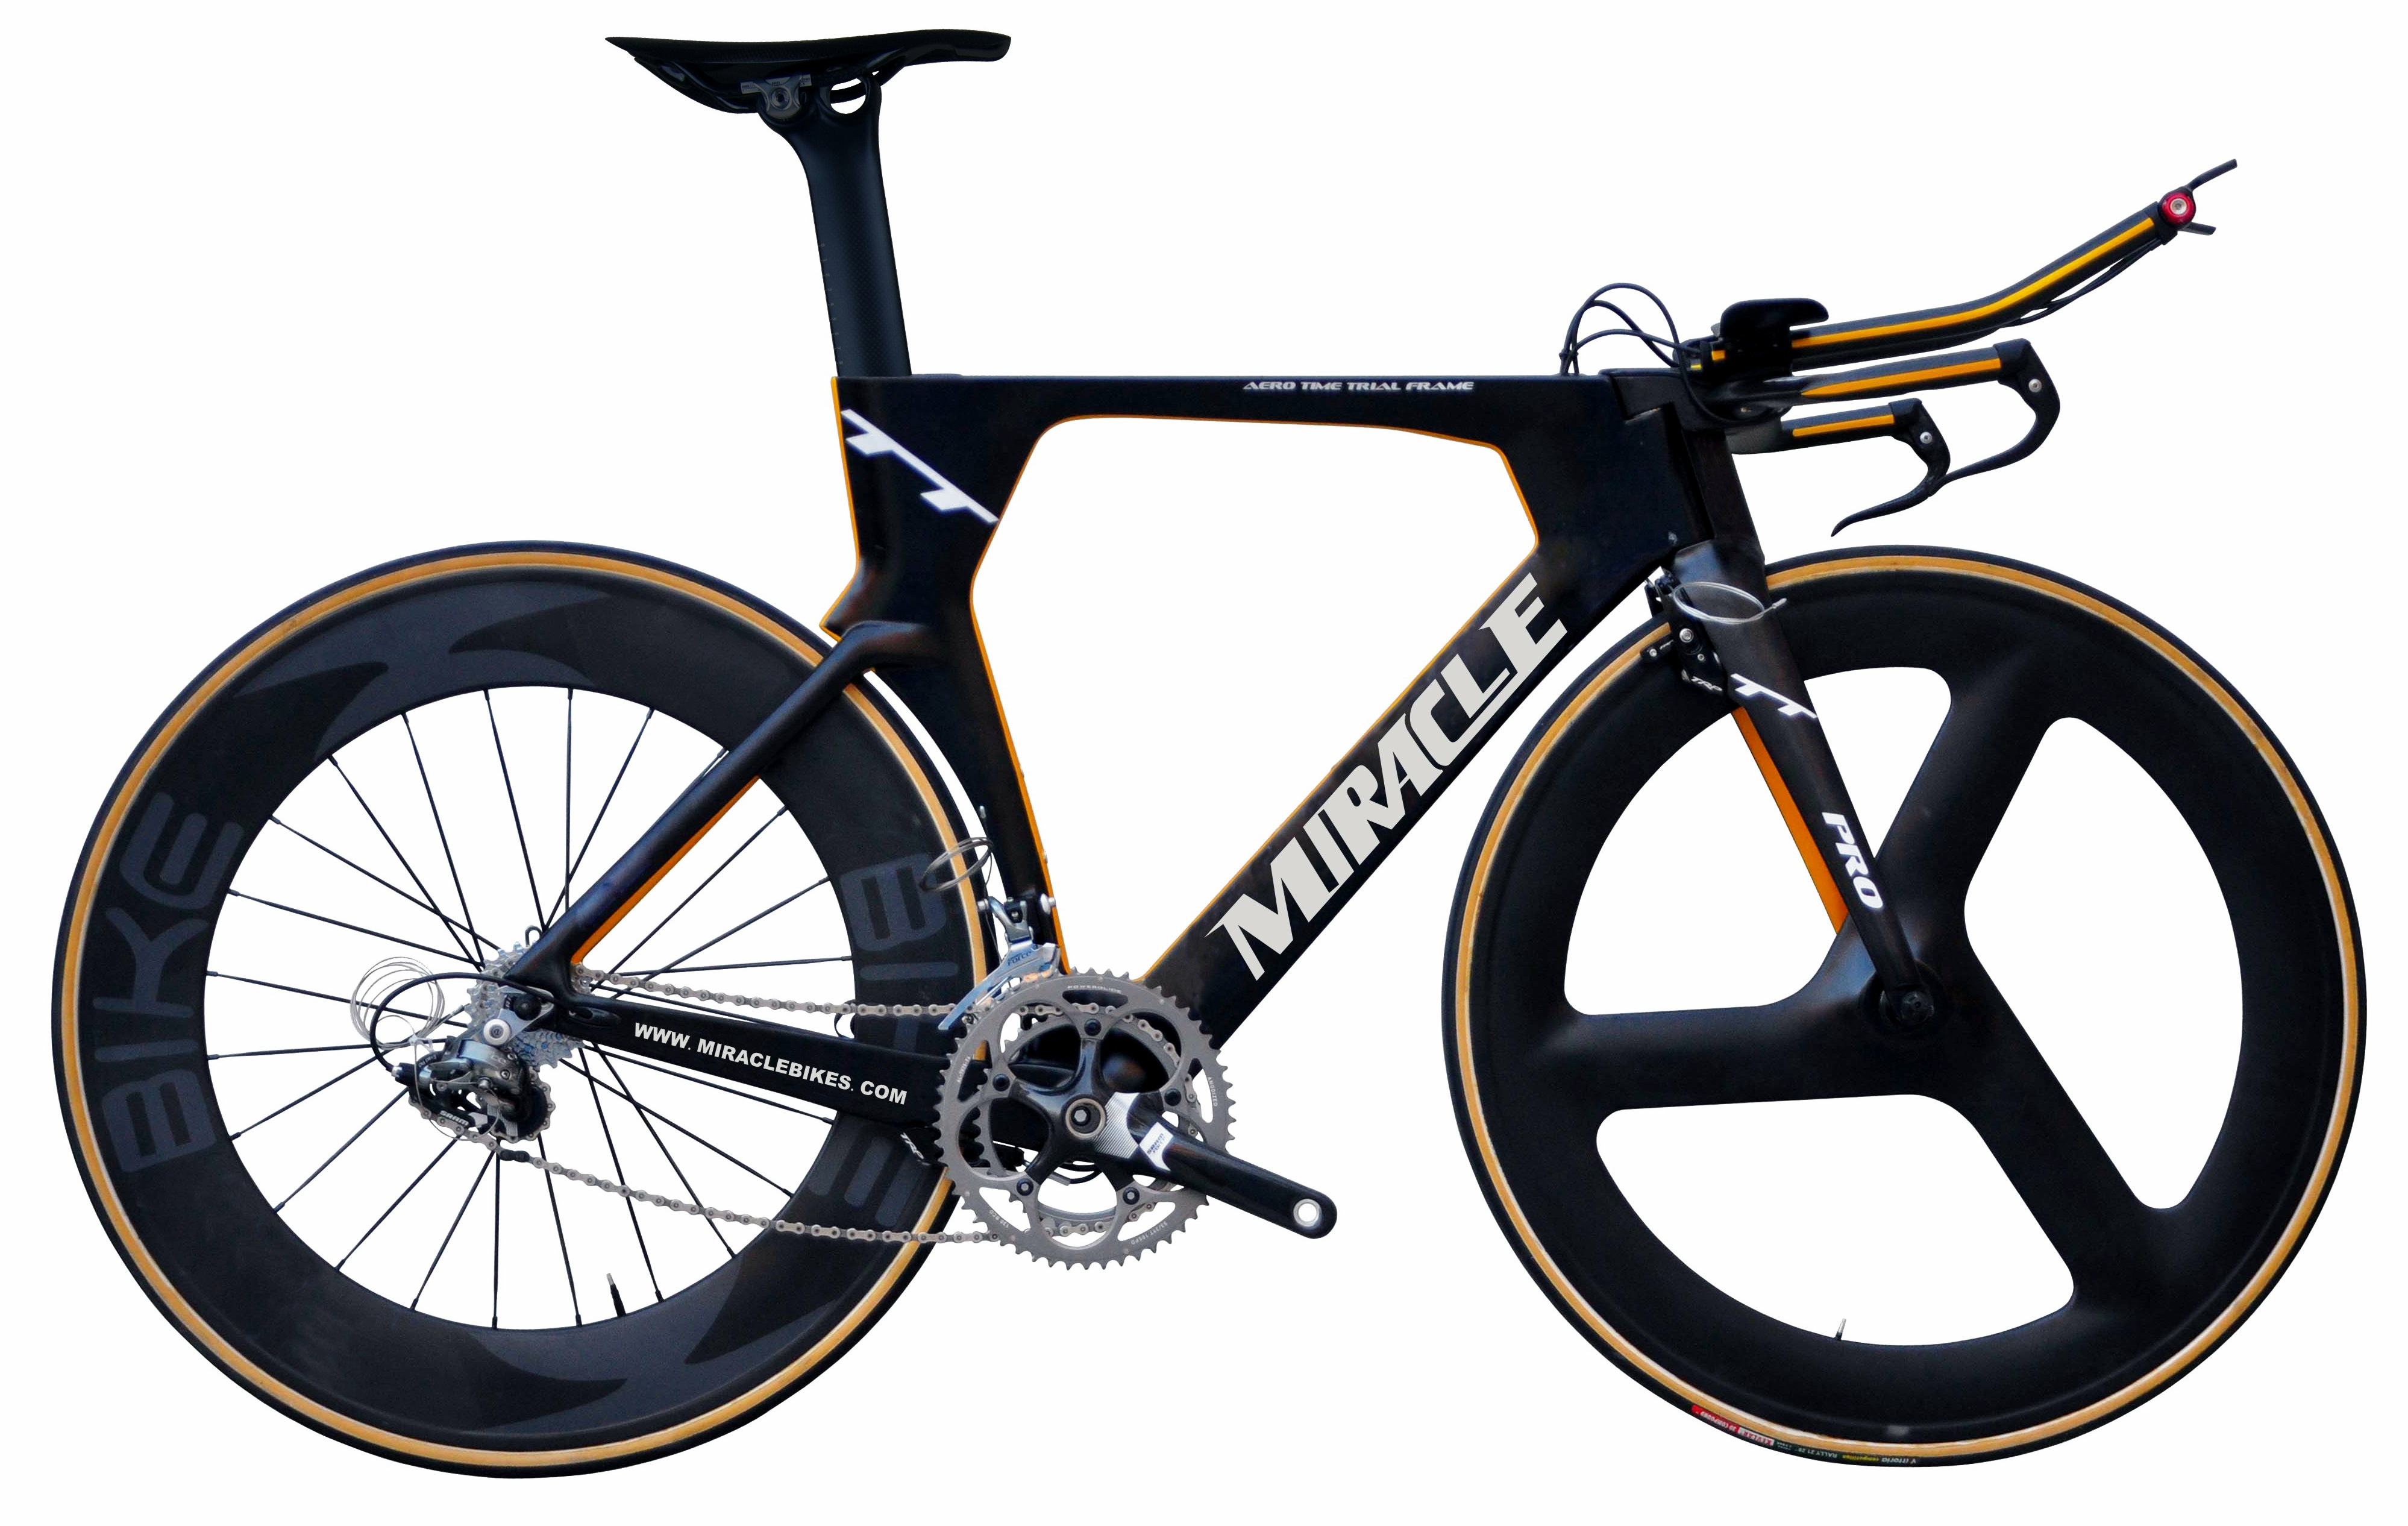 Awesome Miracle Time Trial Bicycle